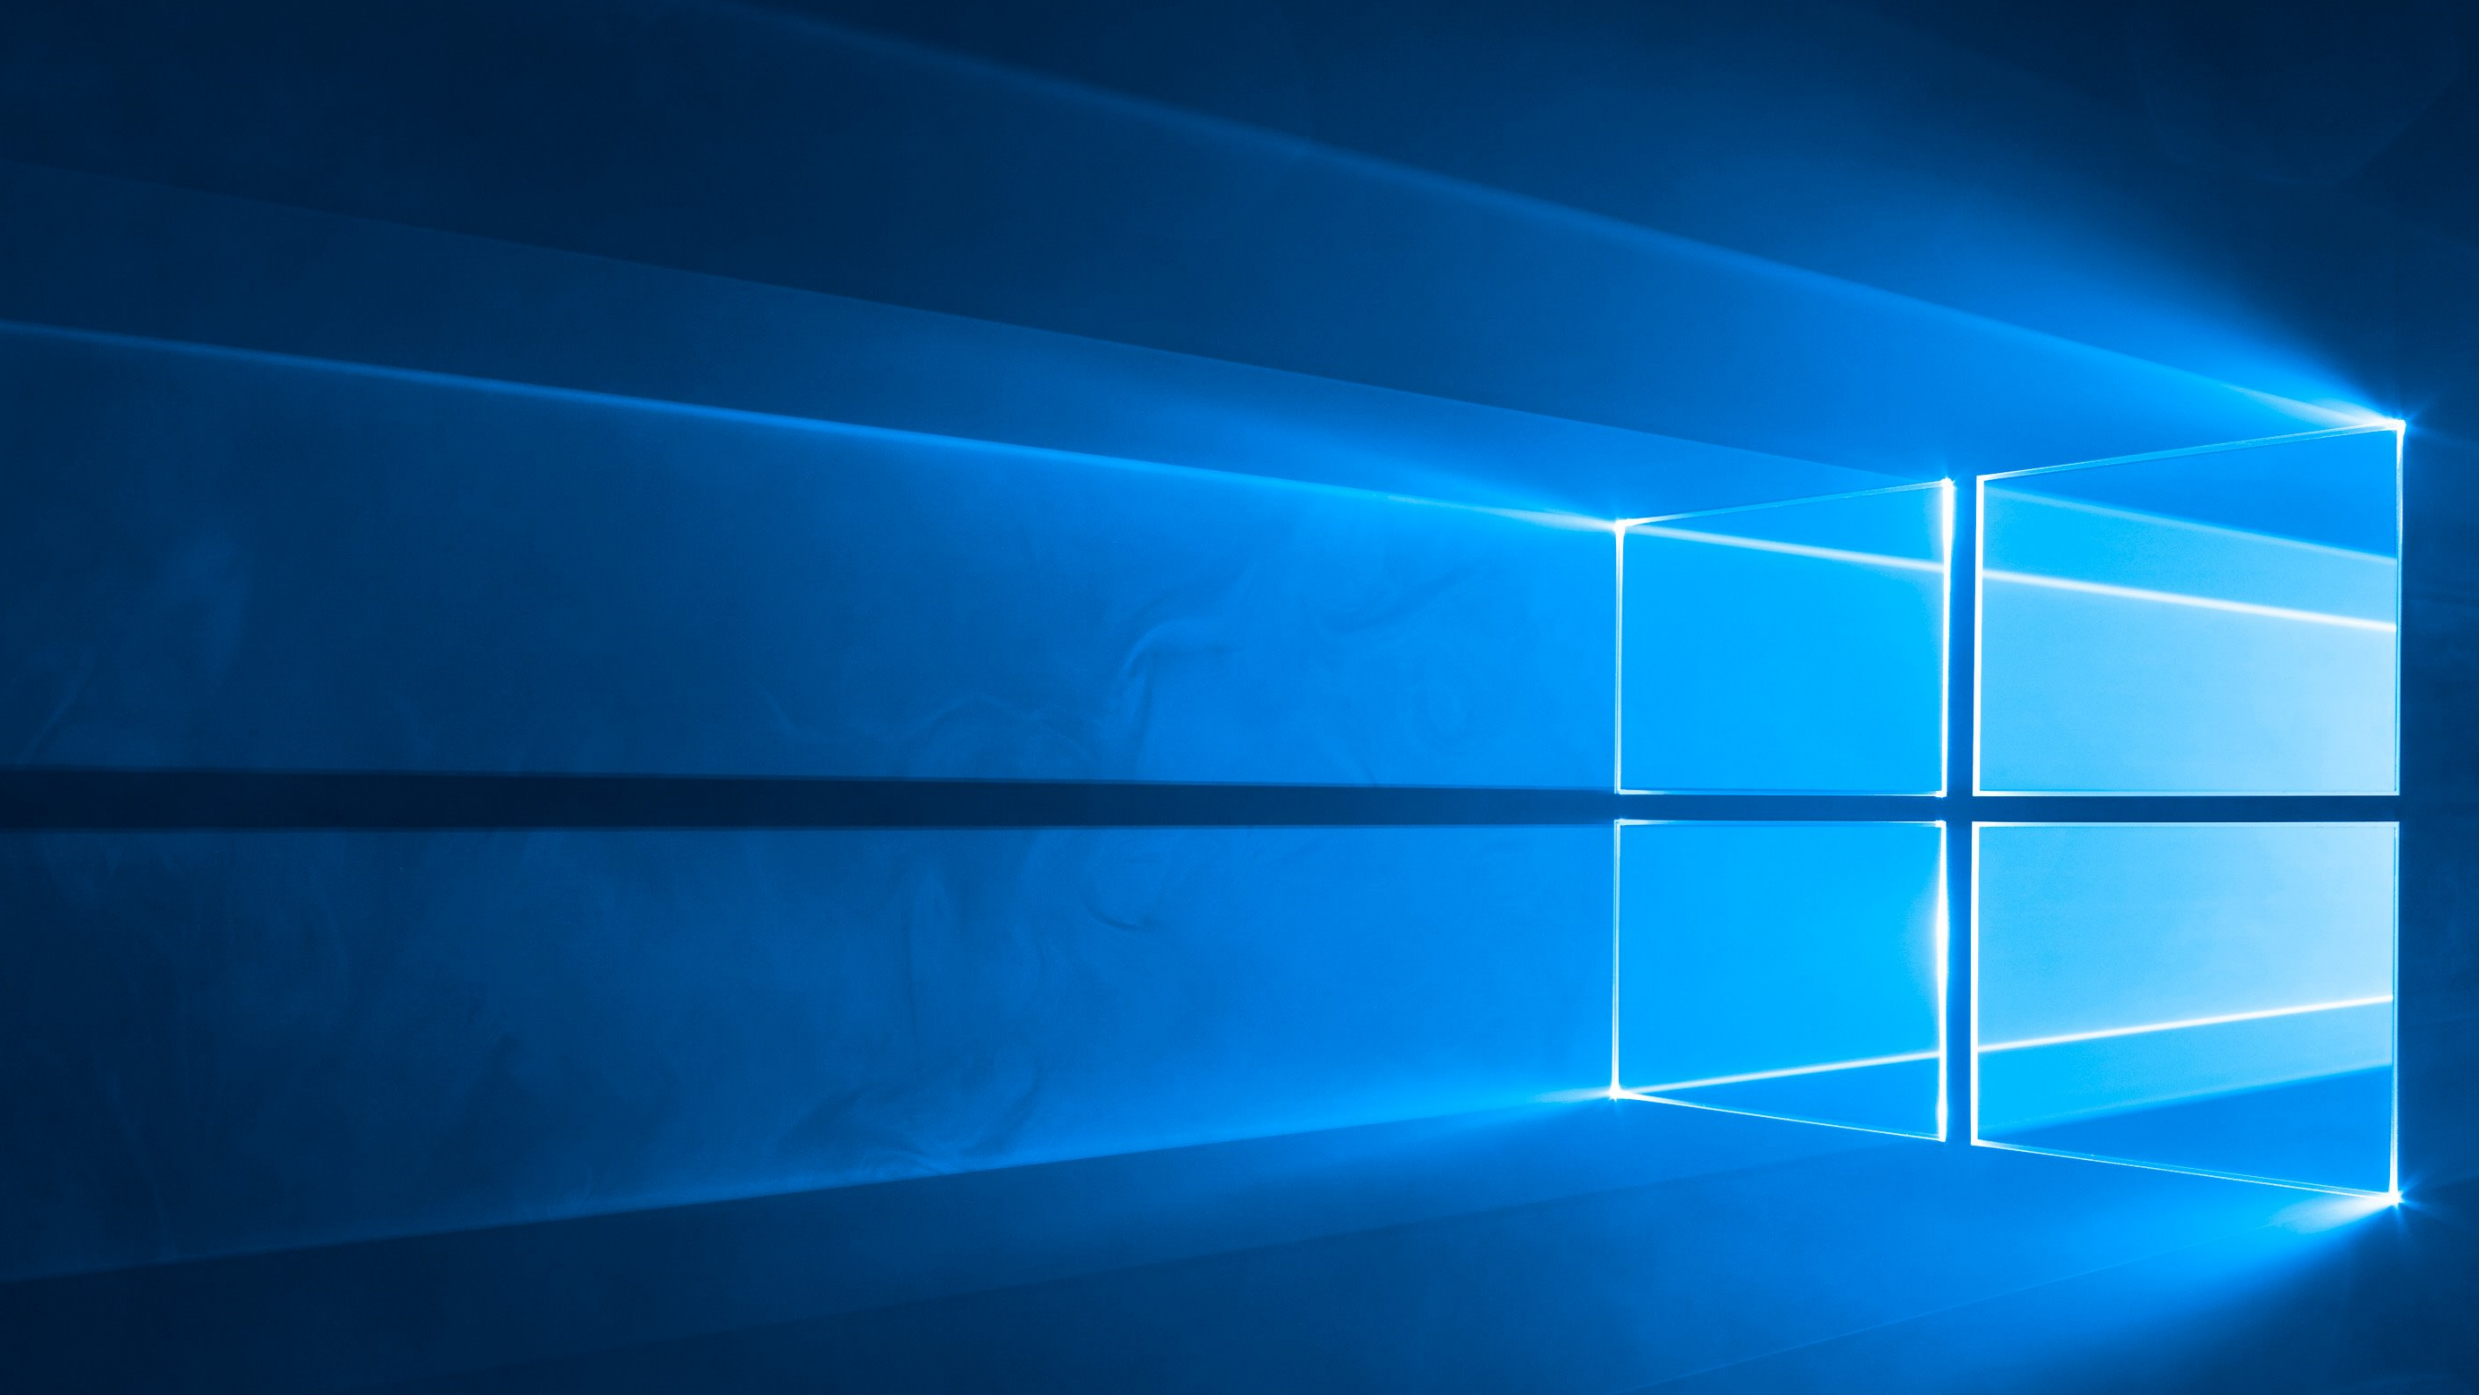 Increase Your Privacy In Windows 10 With 'O&O ShutUp10'